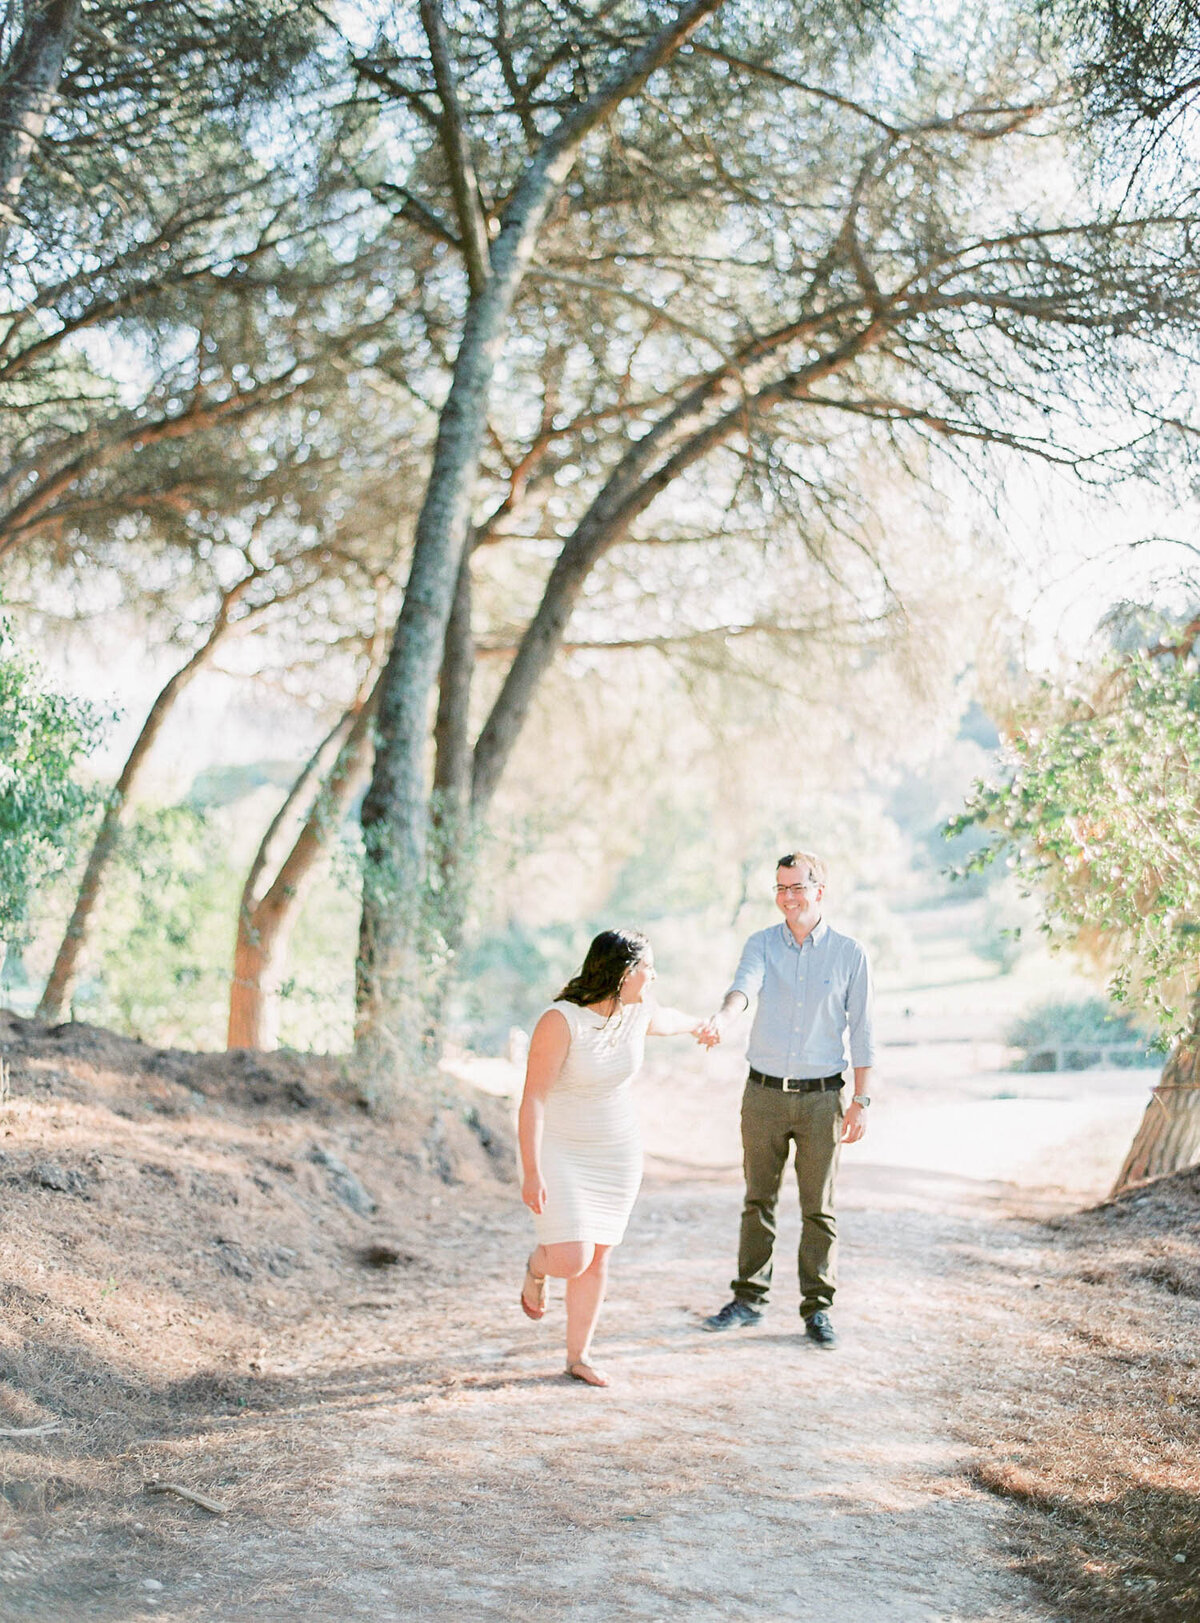 magical-engagement-in-monsanto-park-11